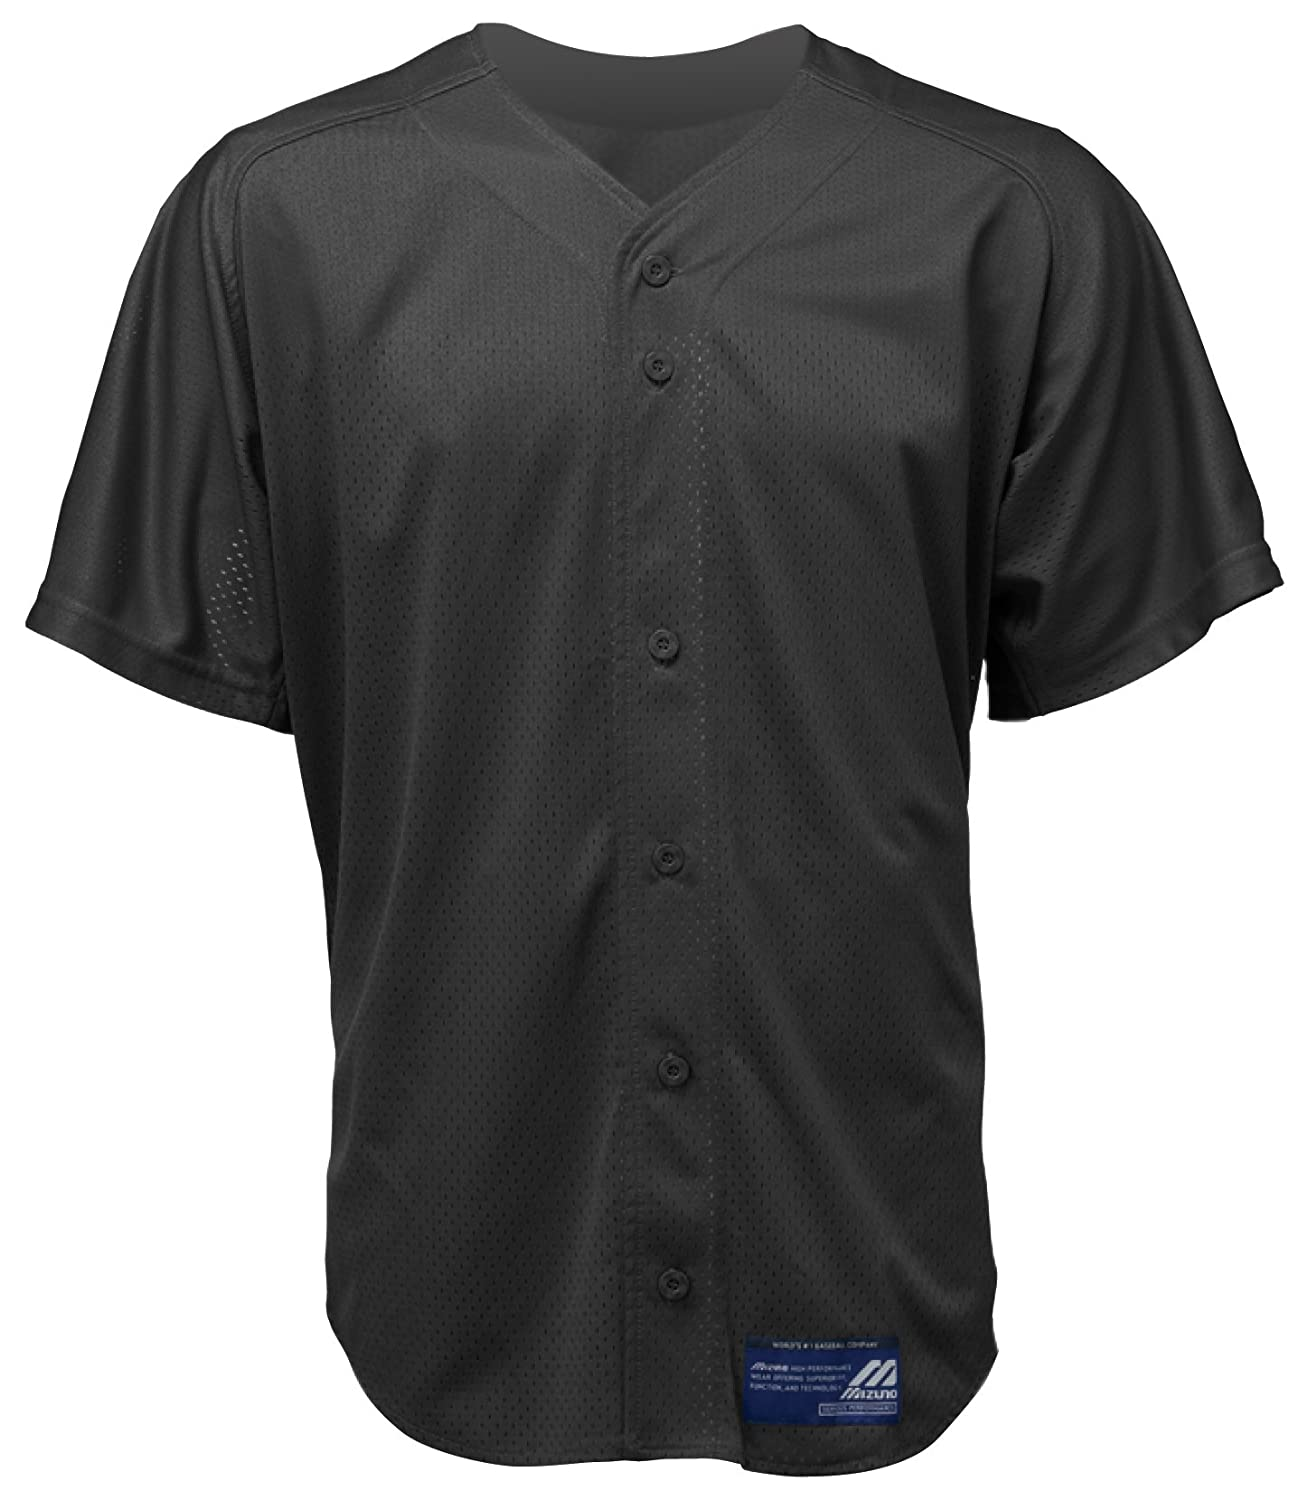 Mizuno Boy's Full Button Mesh Short Sleeve Baseball Jersey, Black, X-Large 350122.9090.07.XL